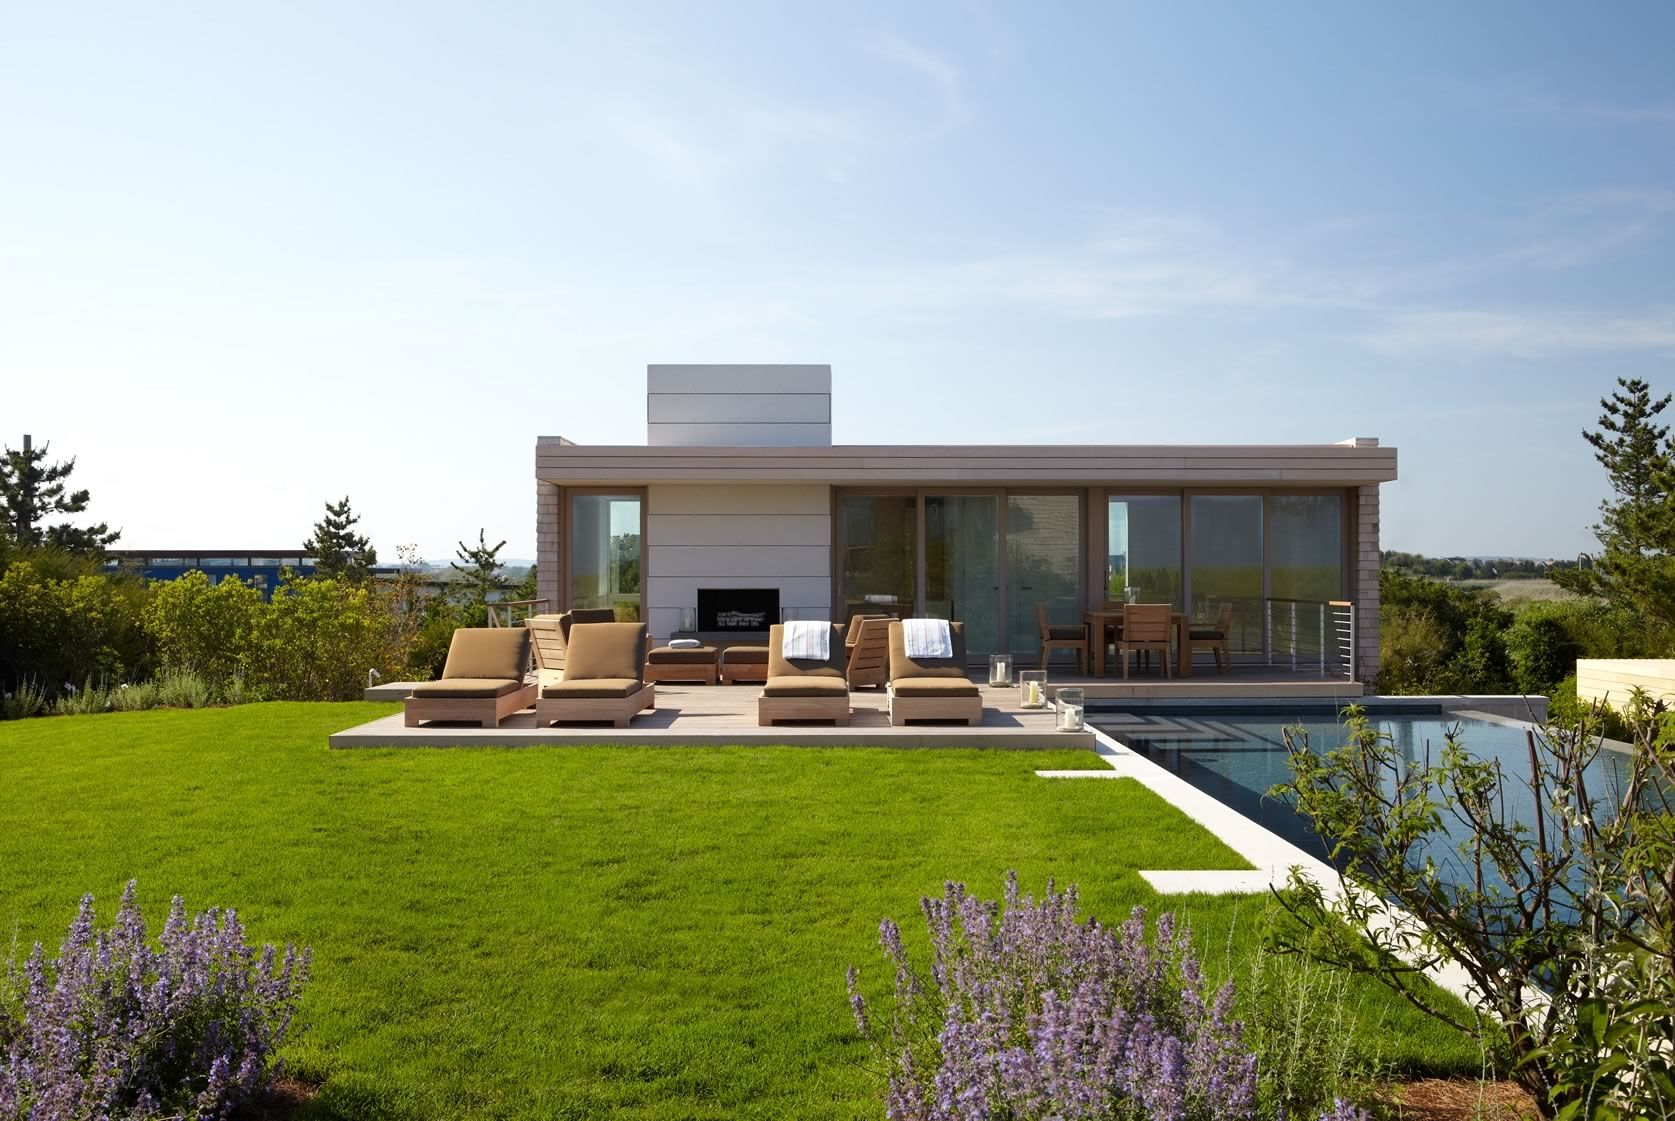 Dune road residence architecture stelle lomont rouhani for American classic guest house nye beach